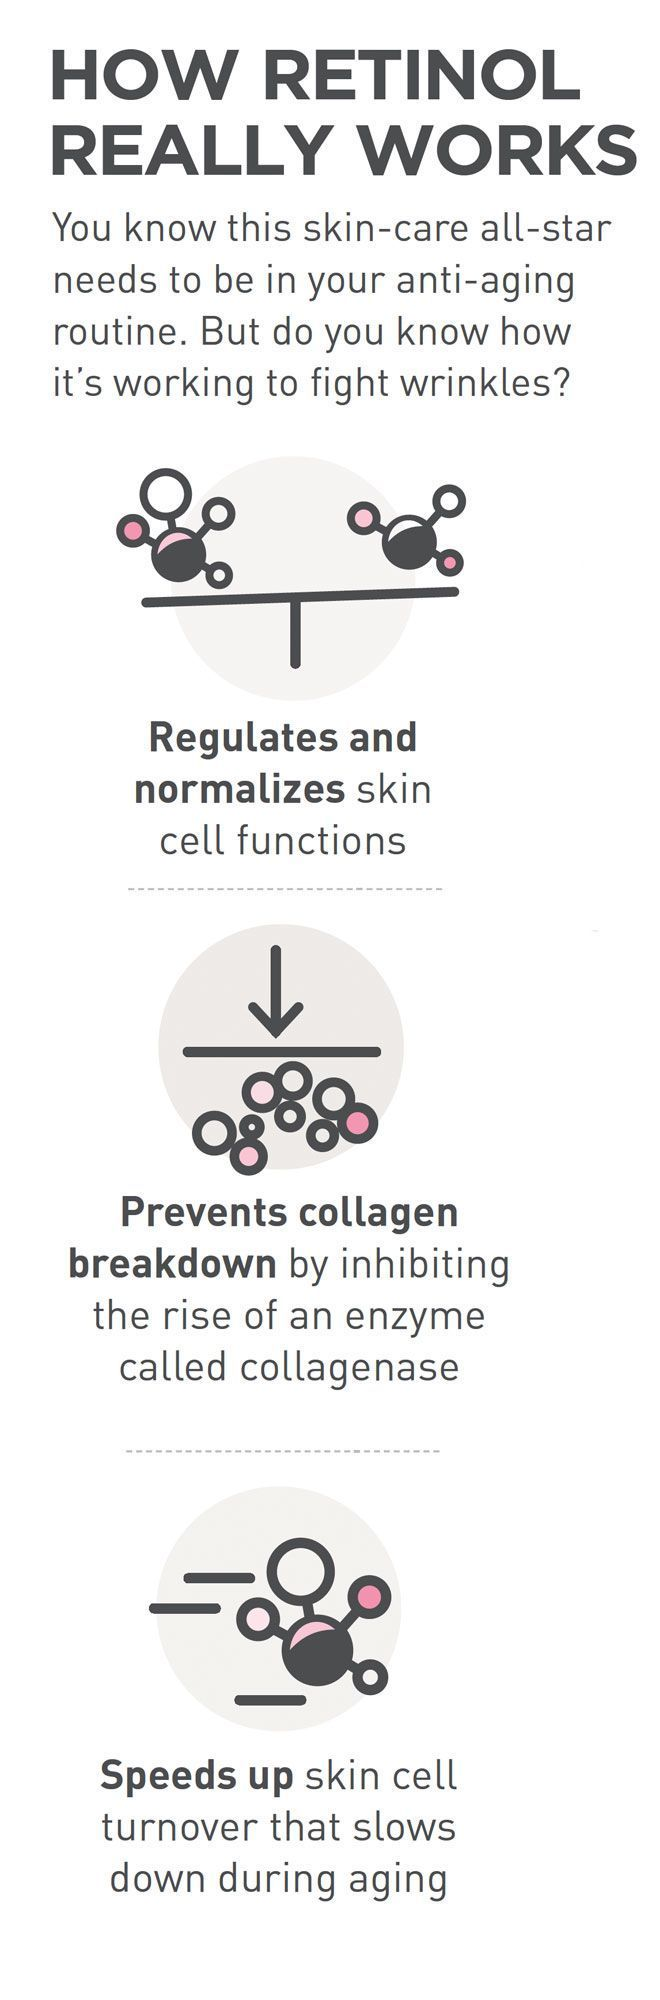 Skincare | How Retinol Really Works? ........ Retinol is a form of Vitamin A that is converted to retinoic acid in the skin. It works to repair photo-damaged skin, acne, and other sluggish skin conditions. It helps to normalized cell turnover, increase collagen deposition and bind moisture in the skin. It inhibits melanogenesis to promote a clear complexion and an even skin tone. Amazing skincare ingredient!